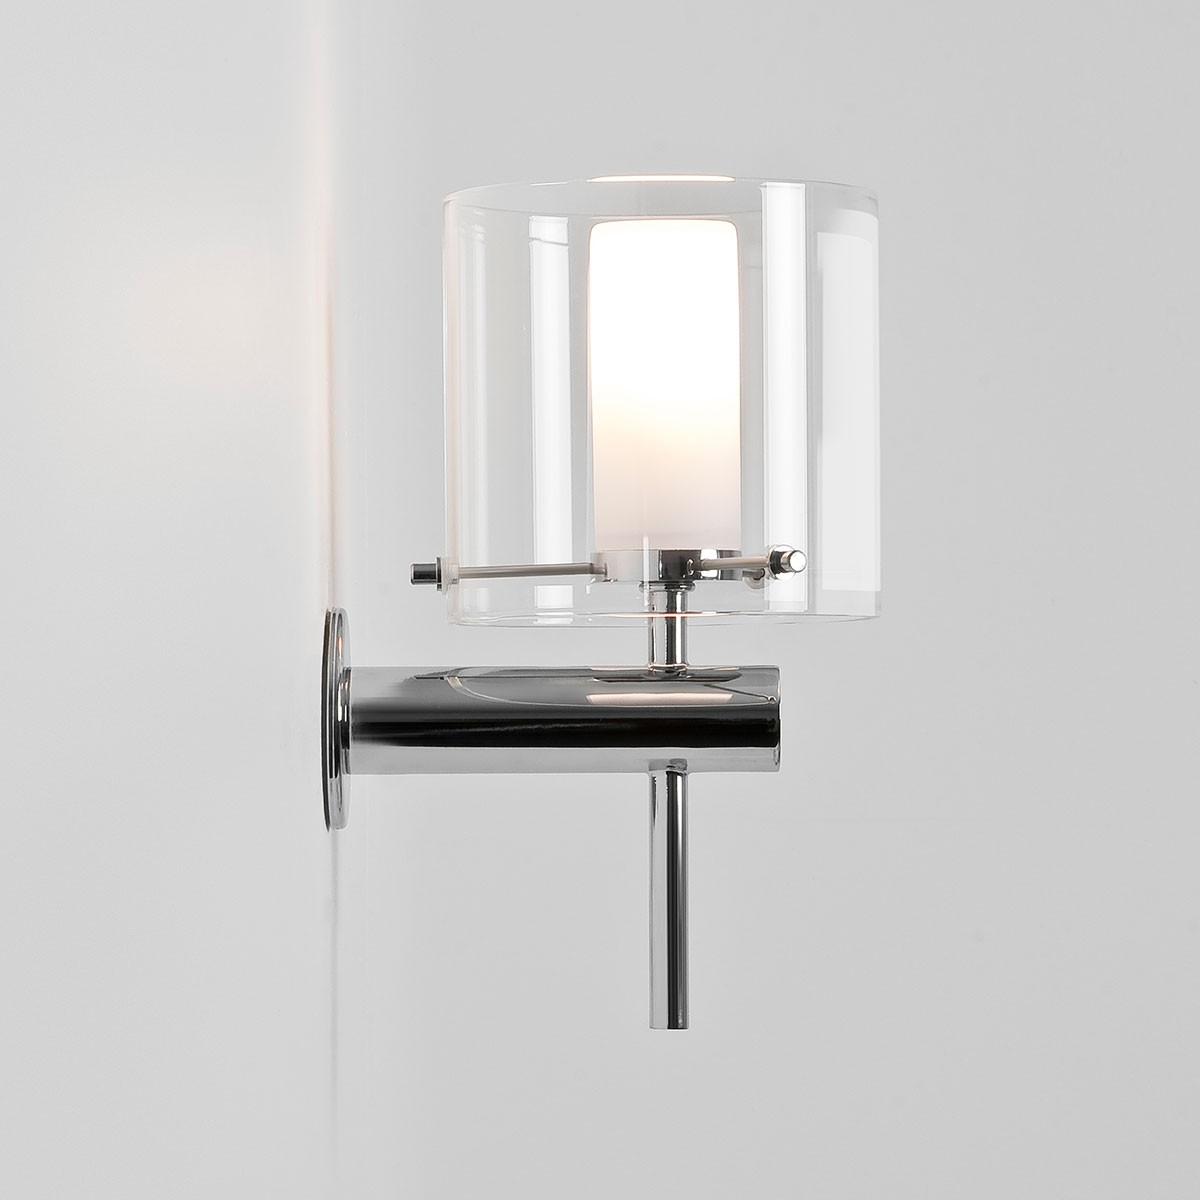 astro bathroom lights astro arezzo polished chrome bathroom wall light at uk 10139